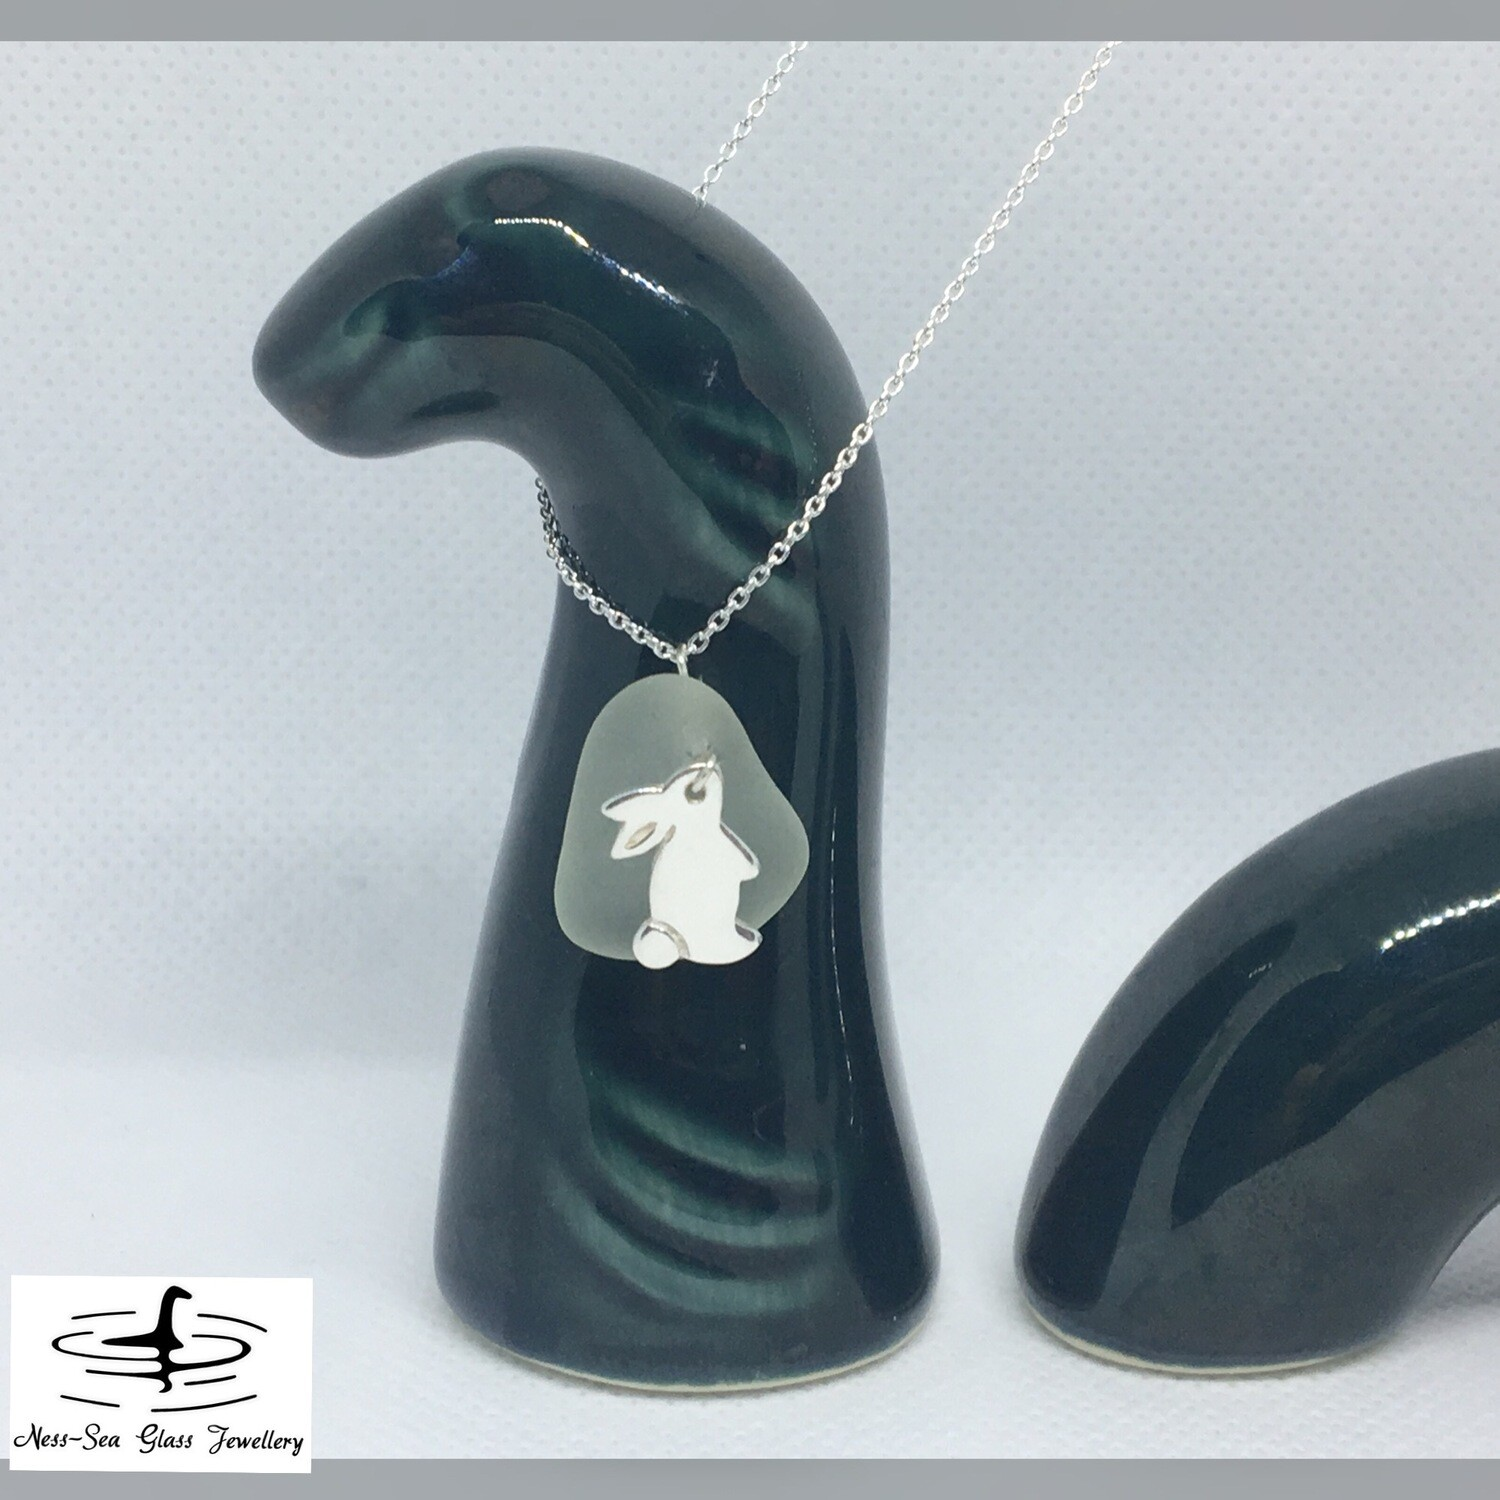 Blue Loch Ness Sea Glass Necklace with Sterling Silver Rabbit Detail and Fine Sterling Silver Chain